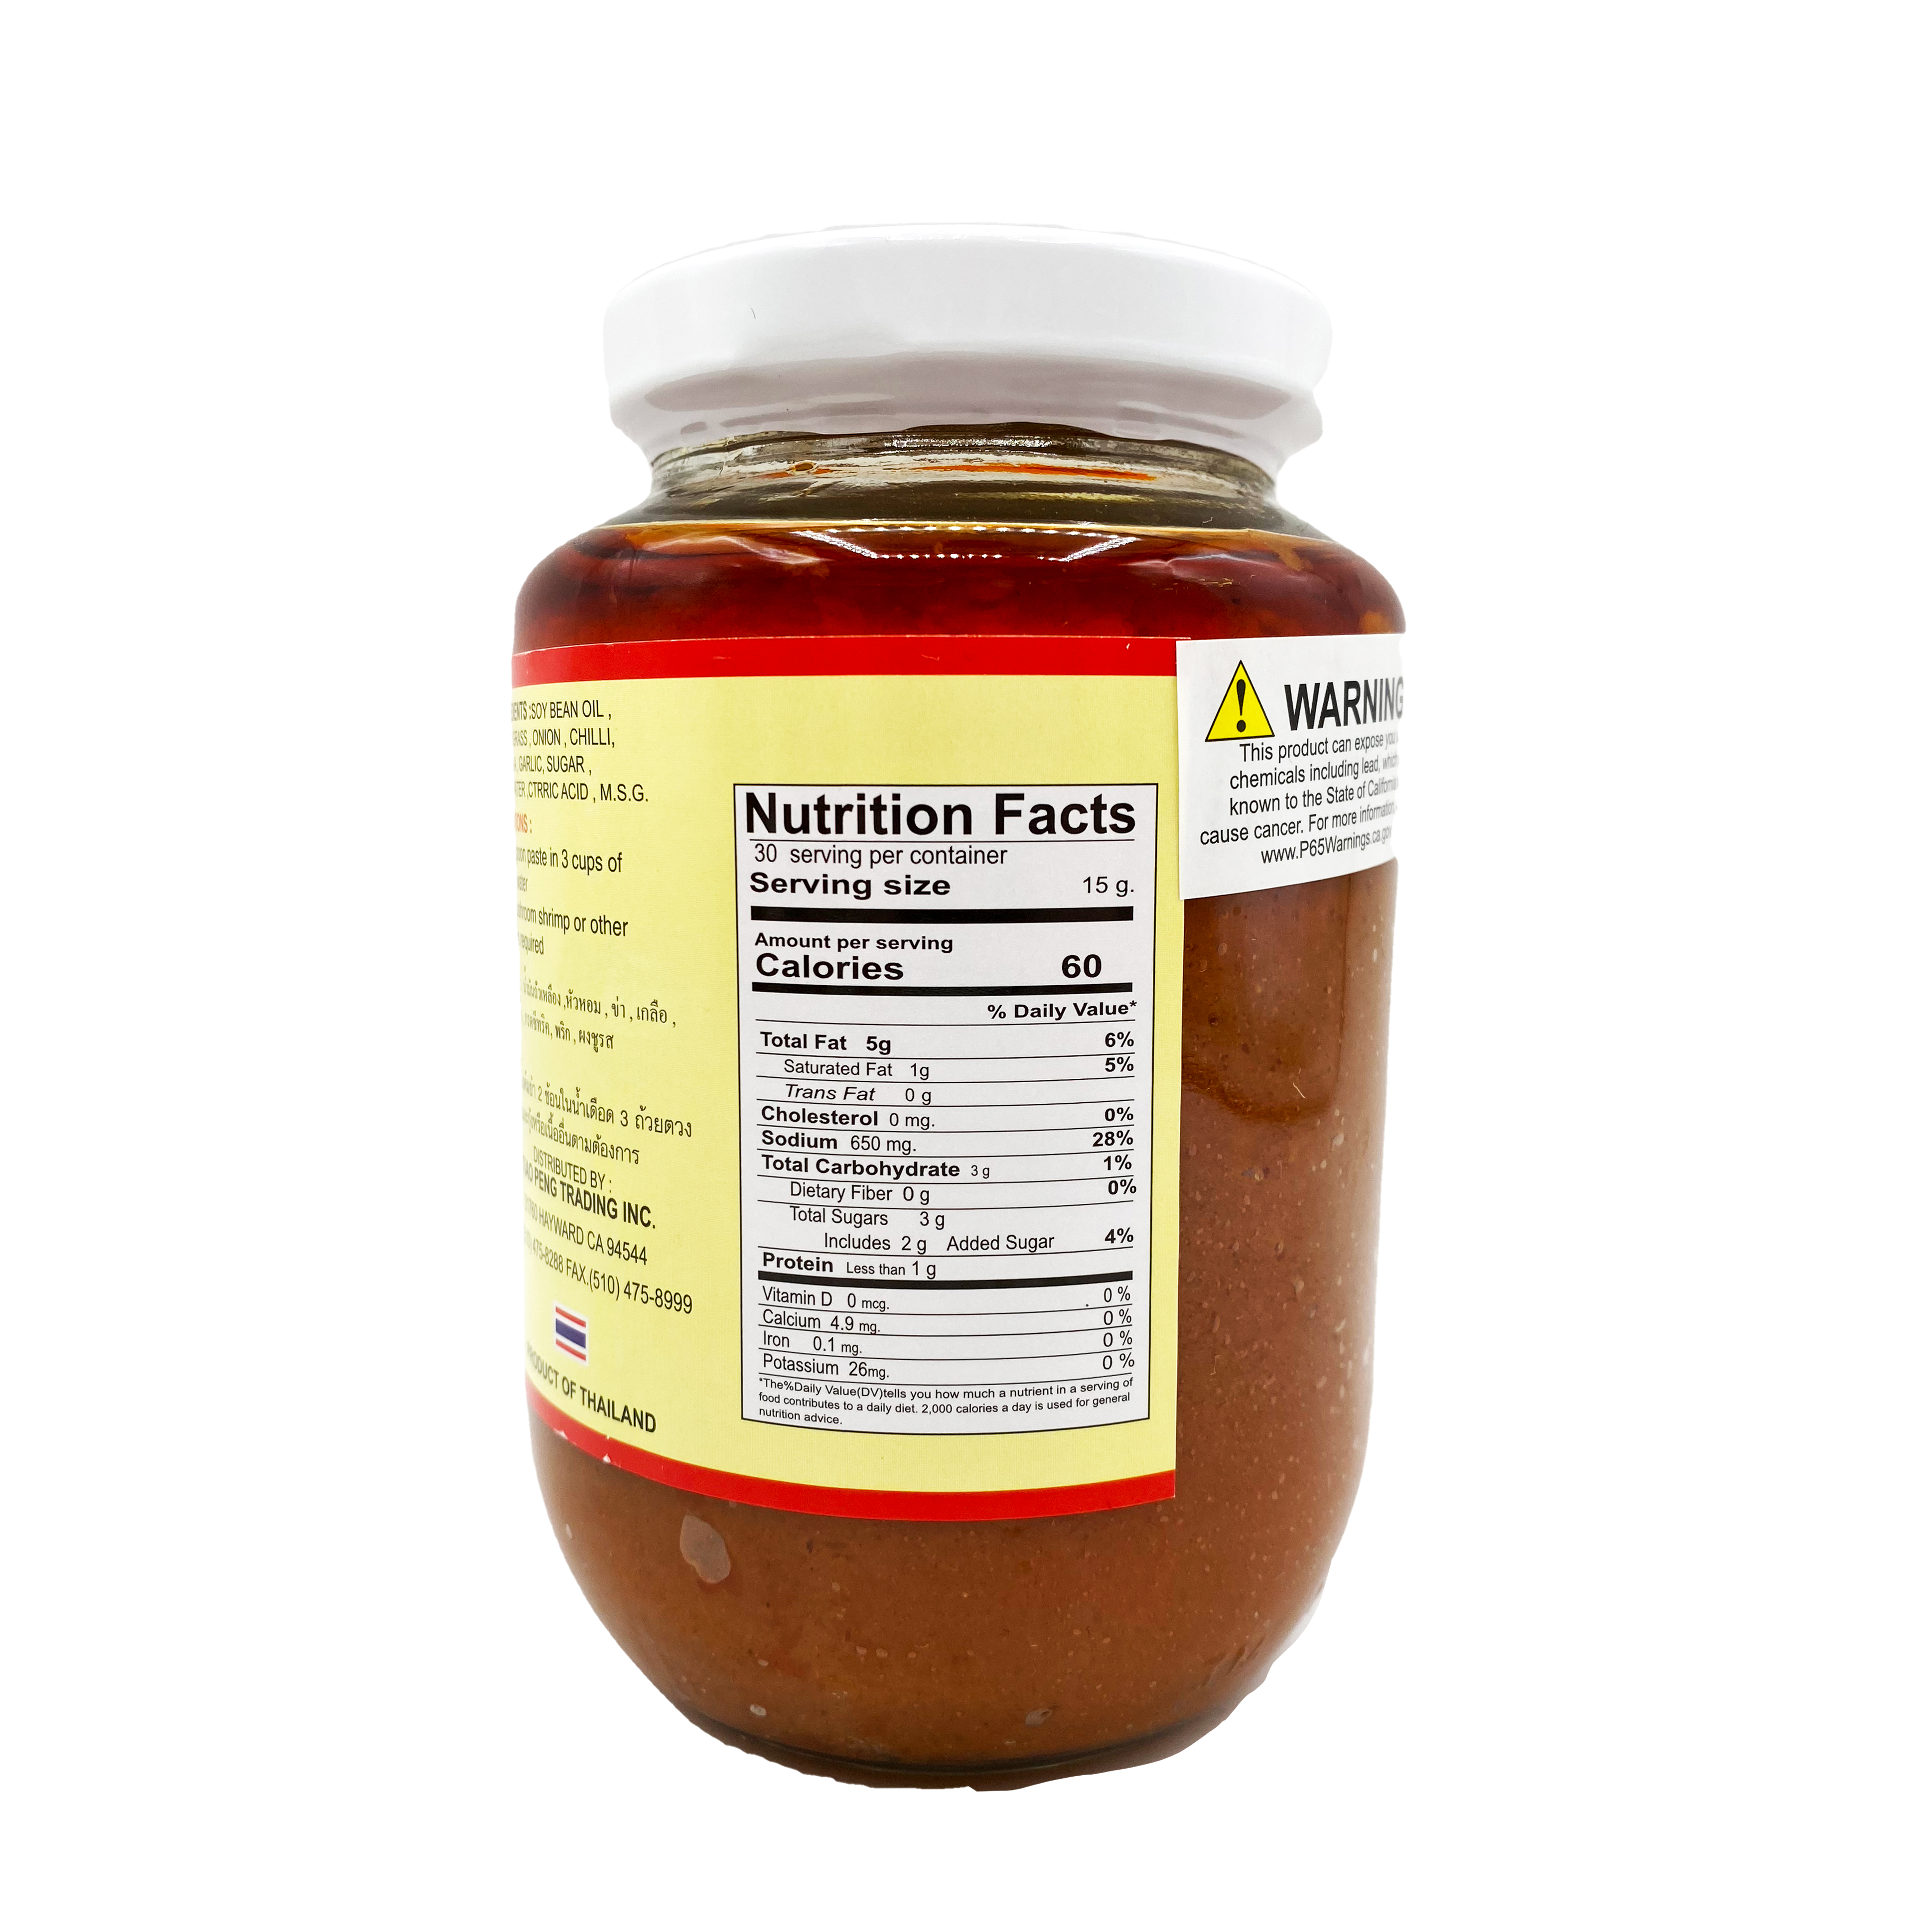 BUTTERFLY Instant Tom Yum Soup Paste 16 OZ